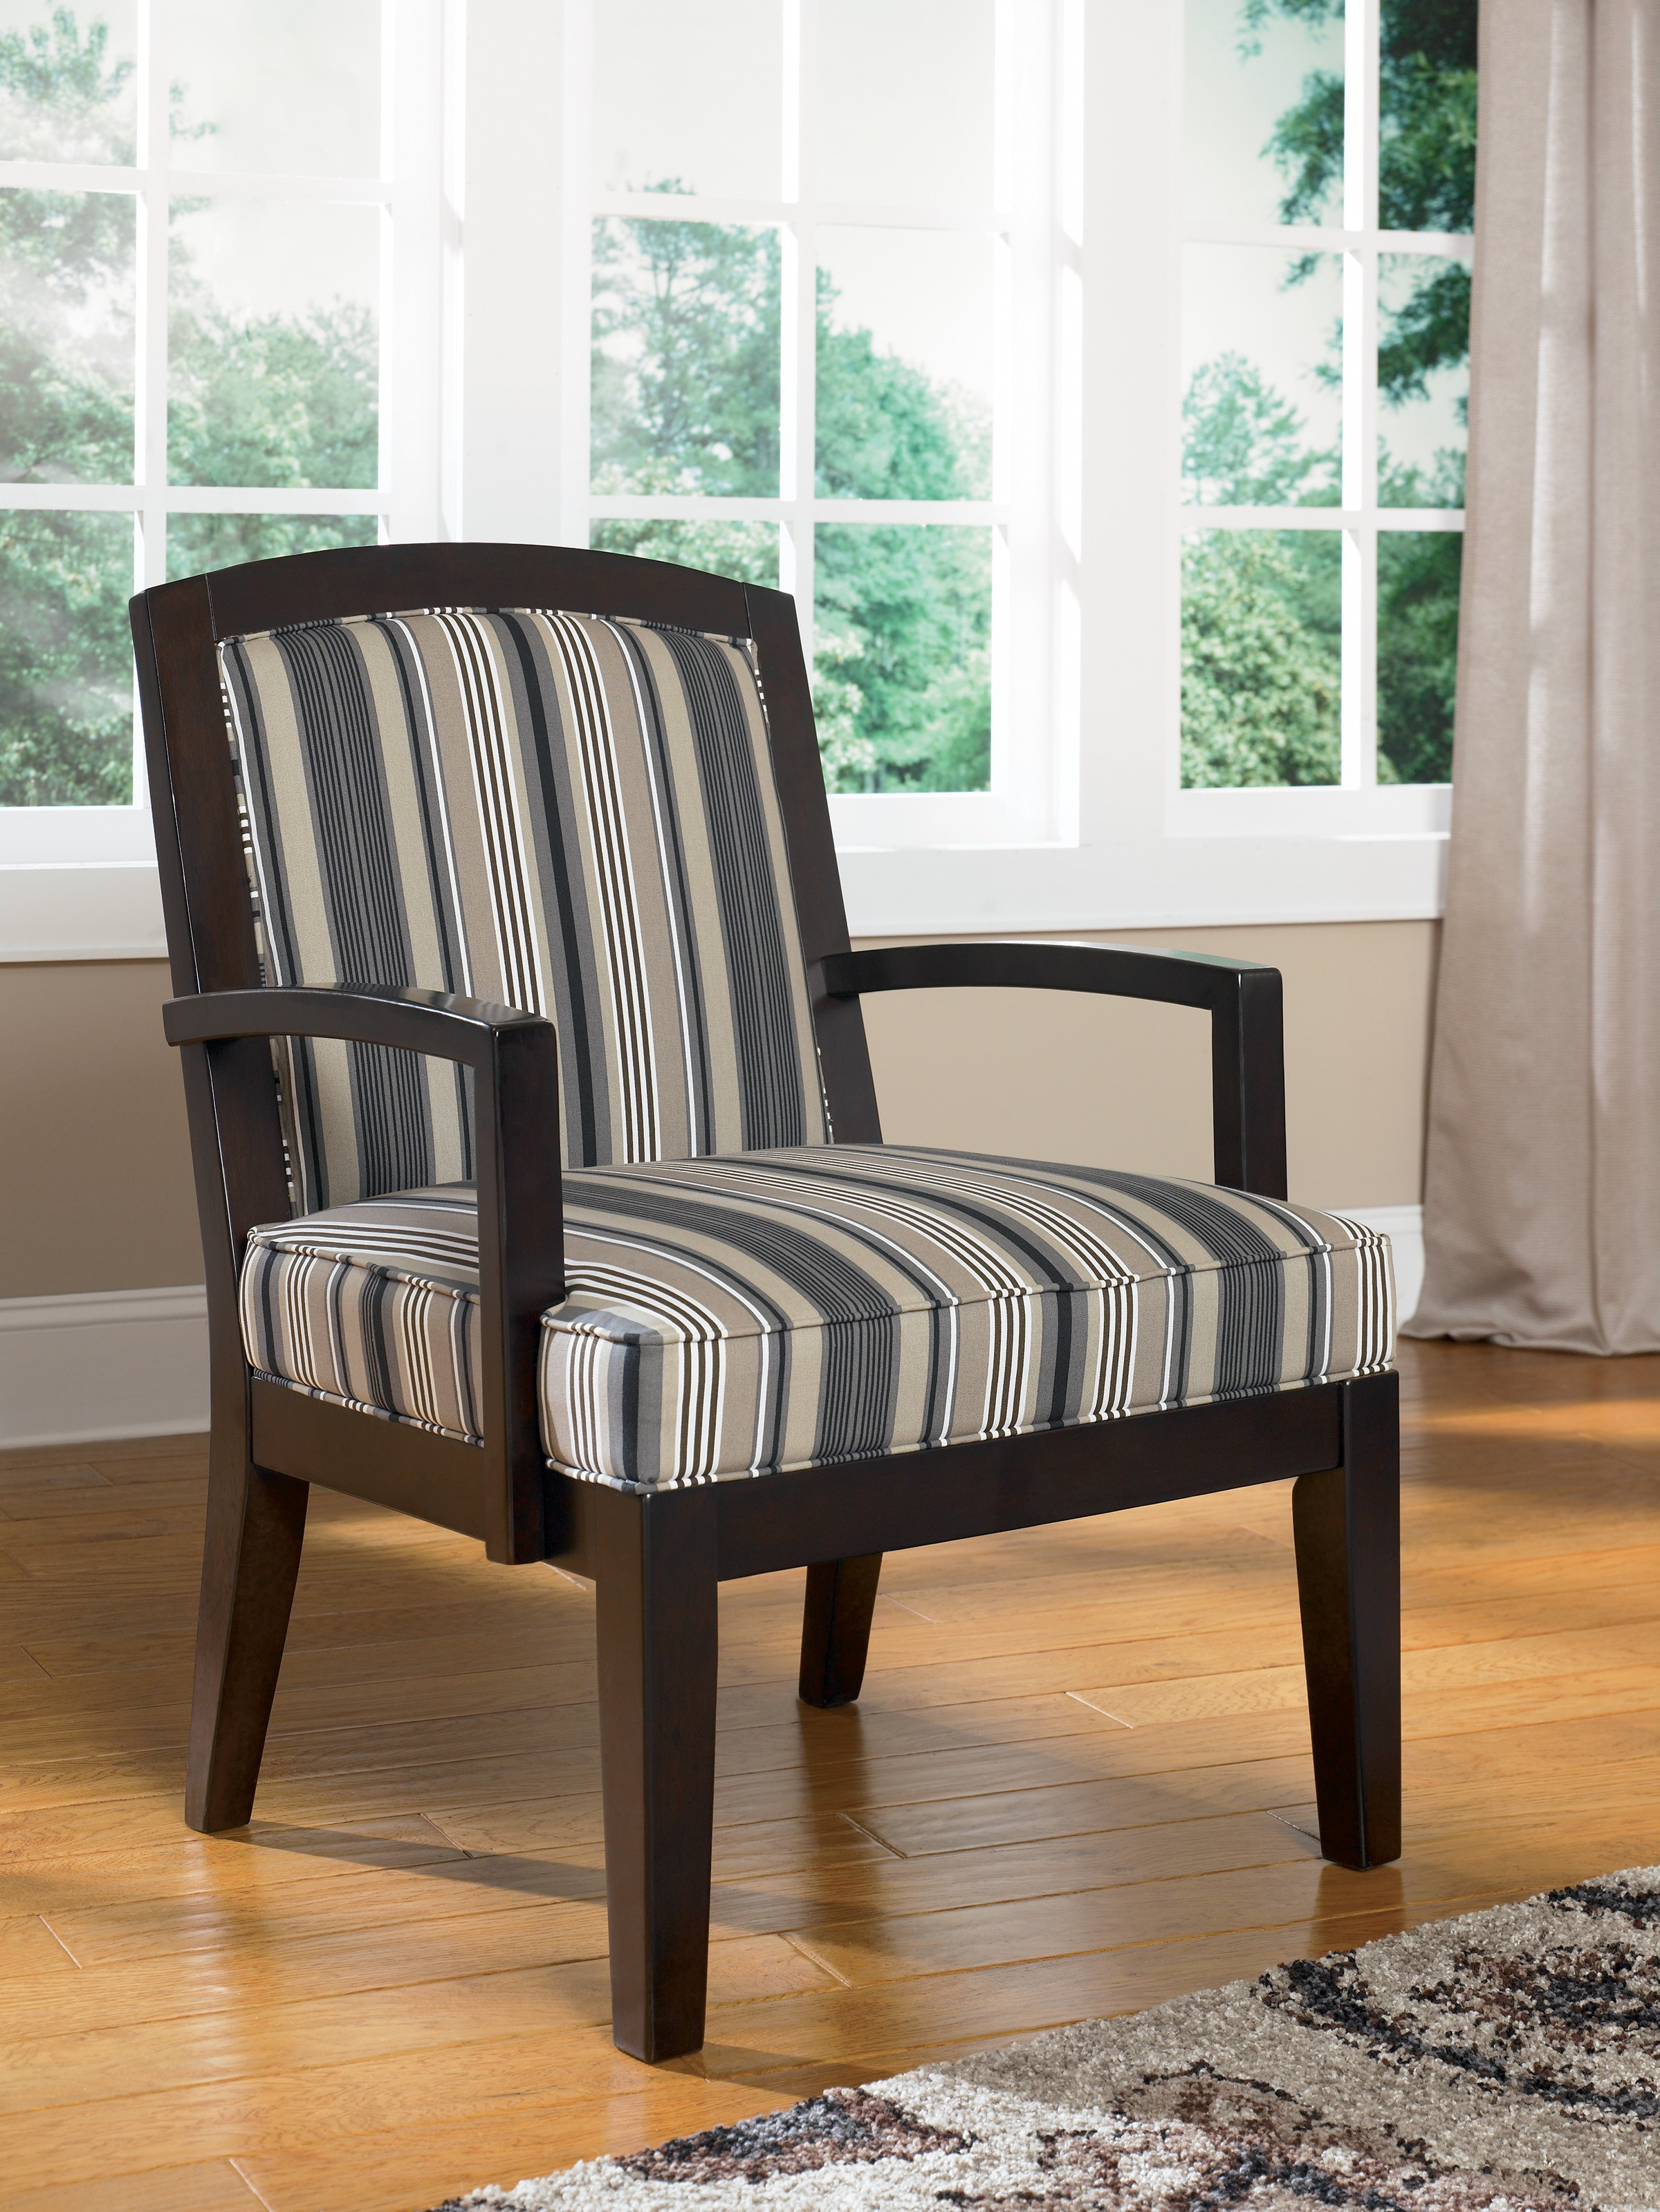 Best ideas about Family Room Chairs . Save or Pin Suitable Concept of Chairs For Living Room Now.